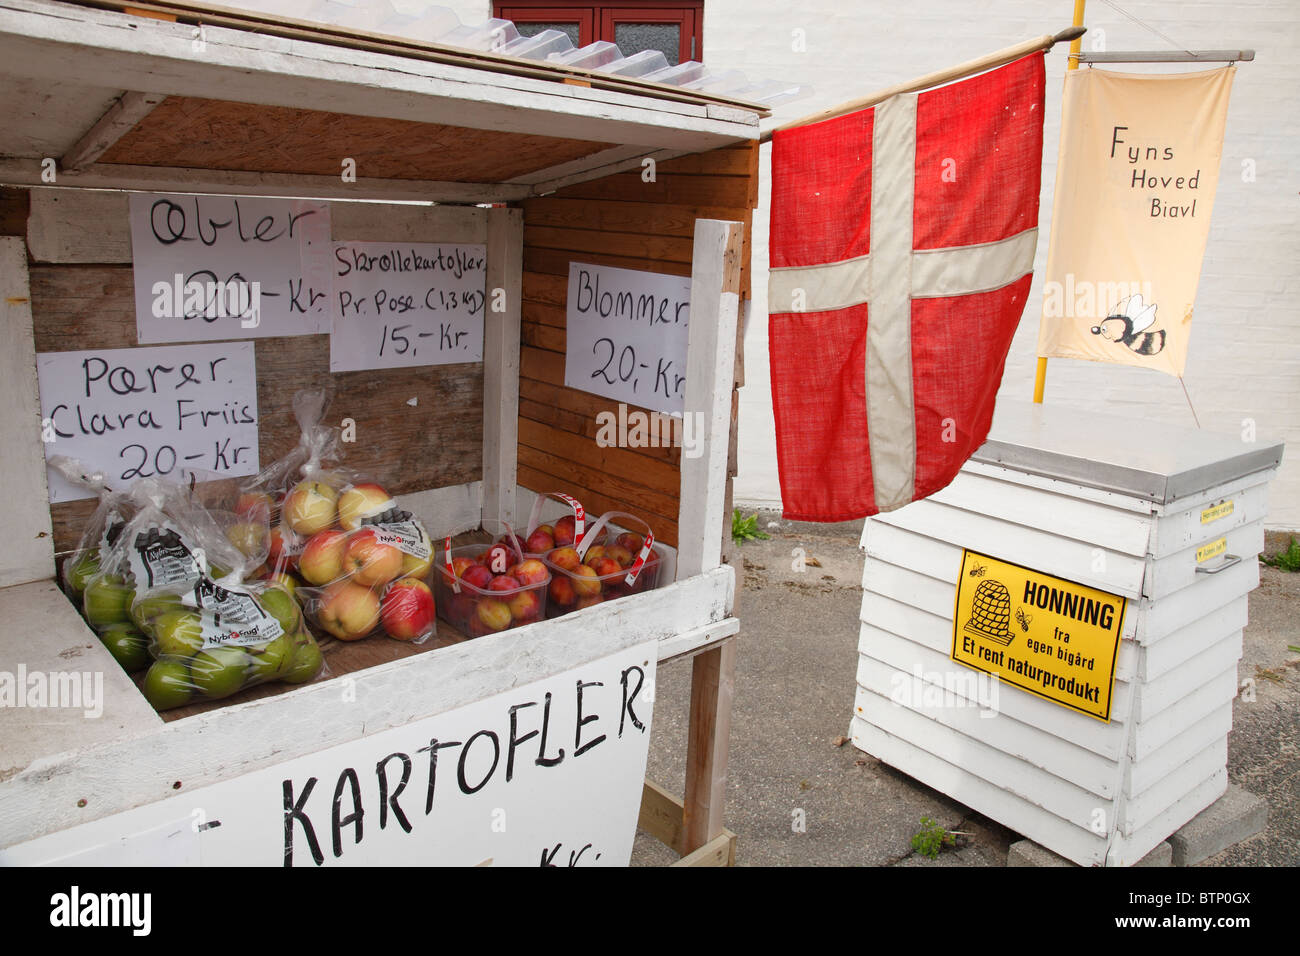 apples and honey direct marketing stand with Danish flag - Stock Image